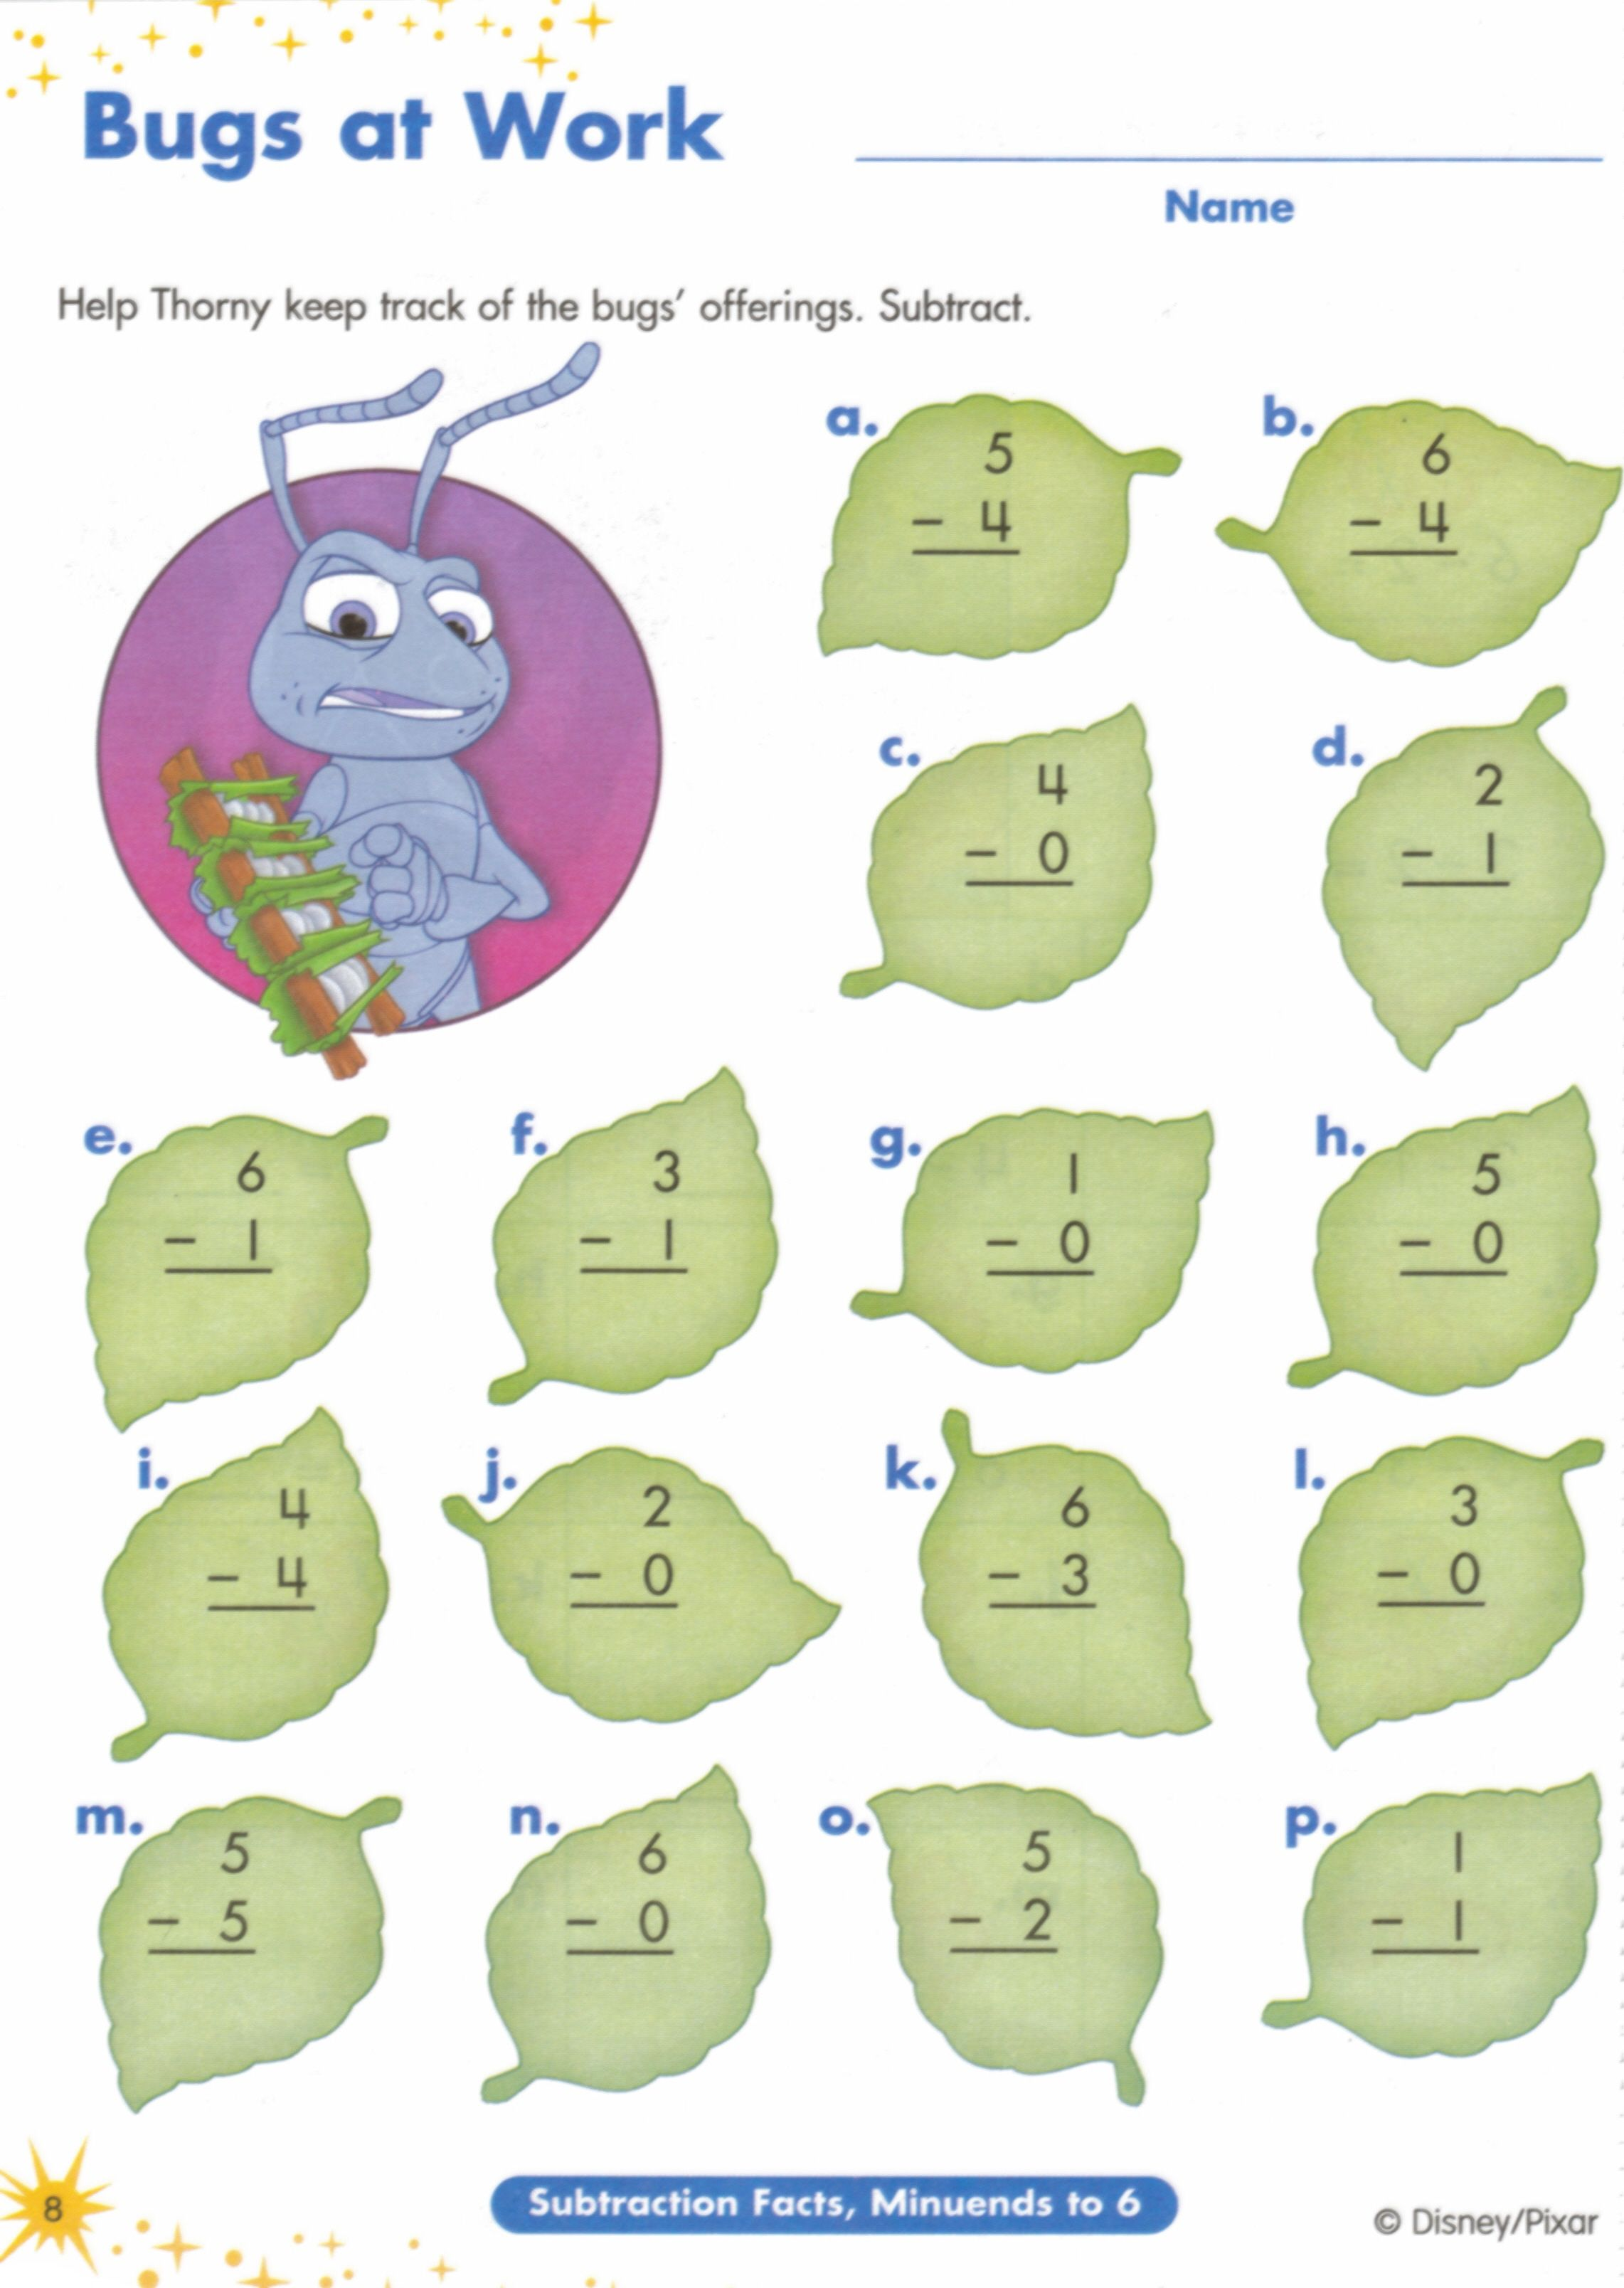 Weirdmailus  Winsome  Images About Worksheets On Pinterest  Fun Facts For Kids  With Interesting  Images About Worksheets On Pinterest  Fun Facts For Kids Earth Day Worksheets And Jungles With Comely First Grade Math Test Worksheets Also Worksheet Stars And The Hr Diagram Answers In Addition Roots And Radicals Worksheet And Kindergarten All About Me Worksheets As Well As Worksheets  Kids Com Additionally Math Worksheets For Prek From Pinterestcom With Weirdmailus  Interesting  Images About Worksheets On Pinterest  Fun Facts For Kids  With Comely  Images About Worksheets On Pinterest  Fun Facts For Kids Earth Day Worksheets And Jungles And Winsome First Grade Math Test Worksheets Also Worksheet Stars And The Hr Diagram Answers In Addition Roots And Radicals Worksheet From Pinterestcom